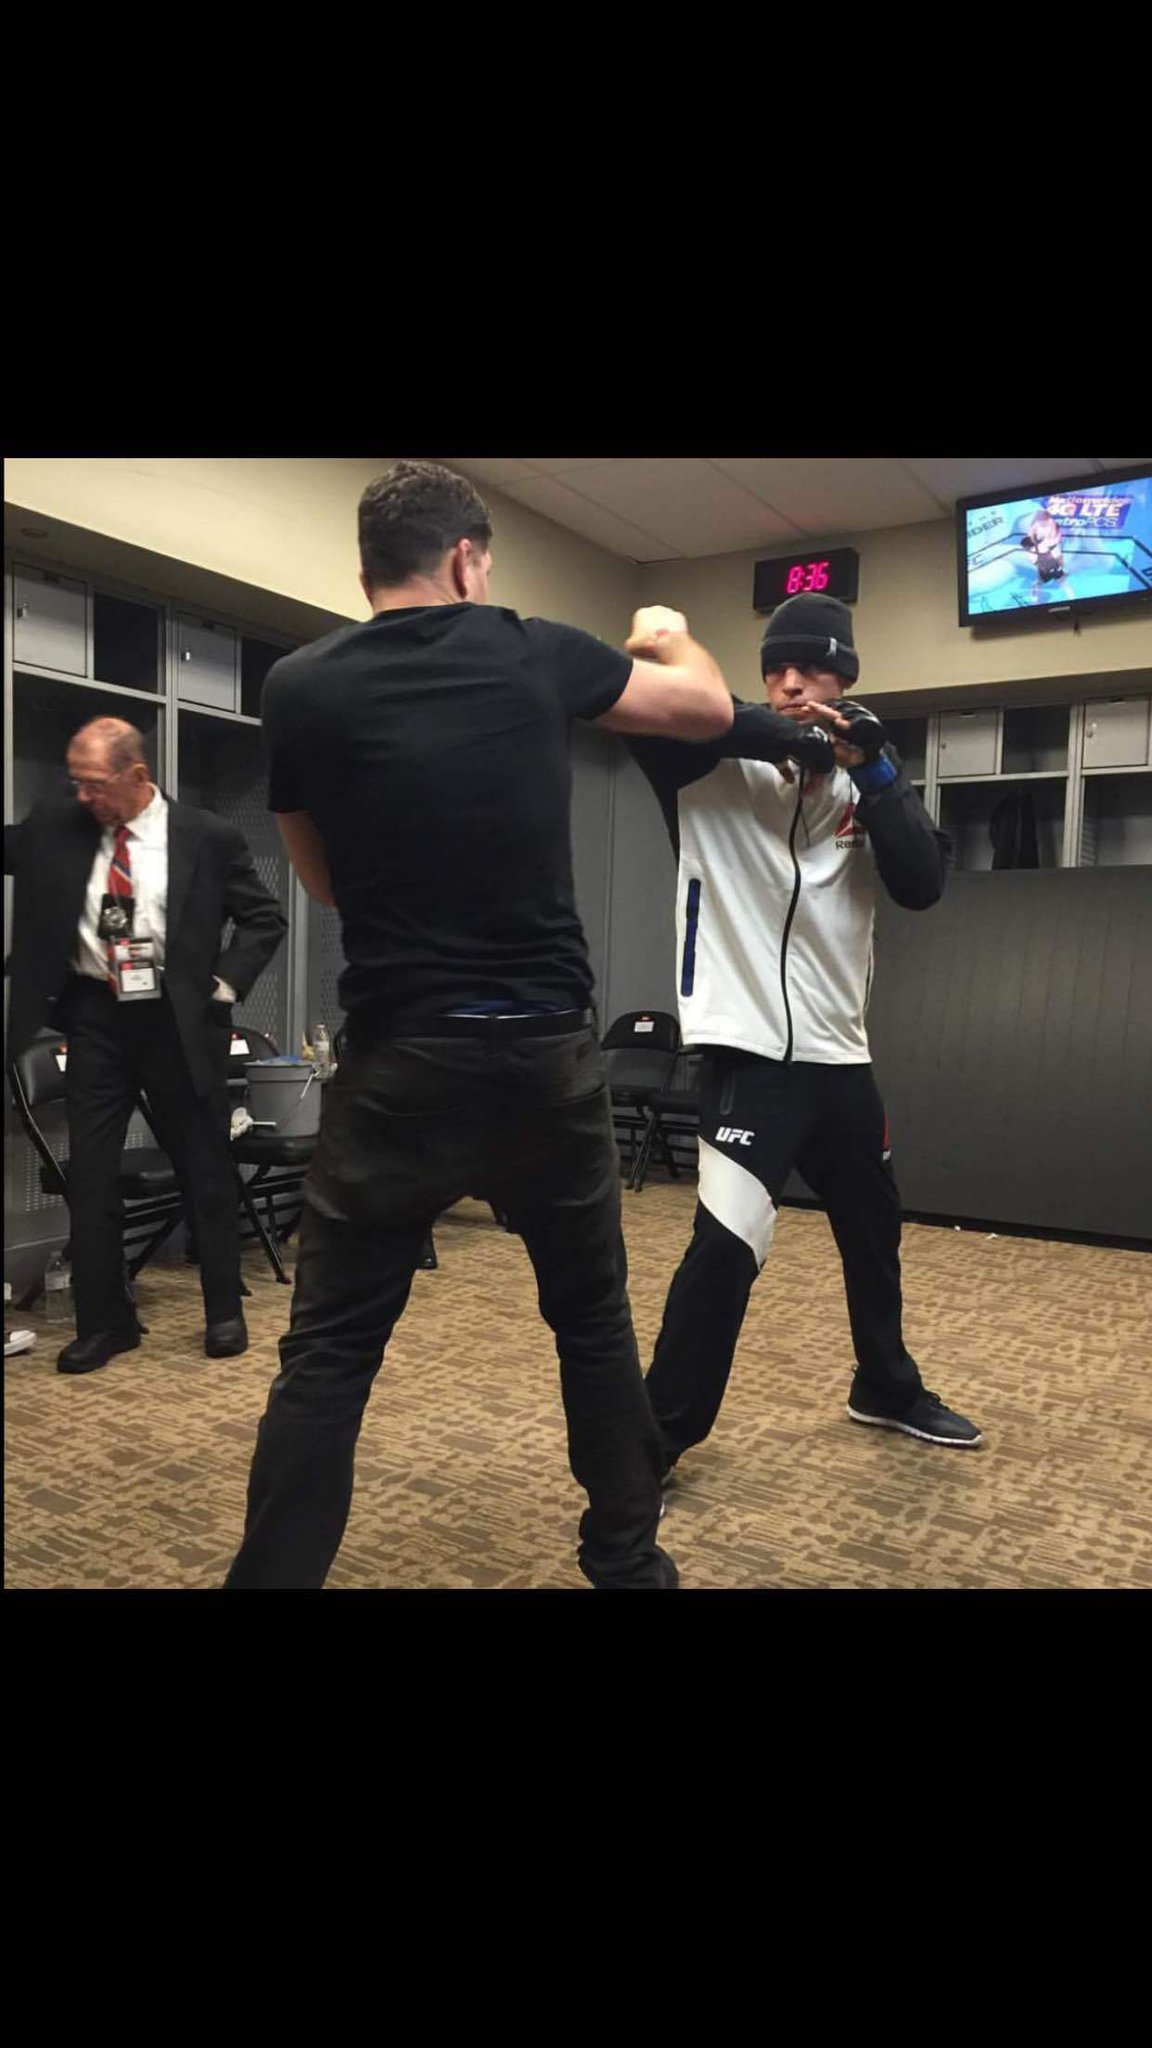 With nick diaz before fight ... https://t.co/oS9RrhrMNH https://t.co/KkHMUoMOWp